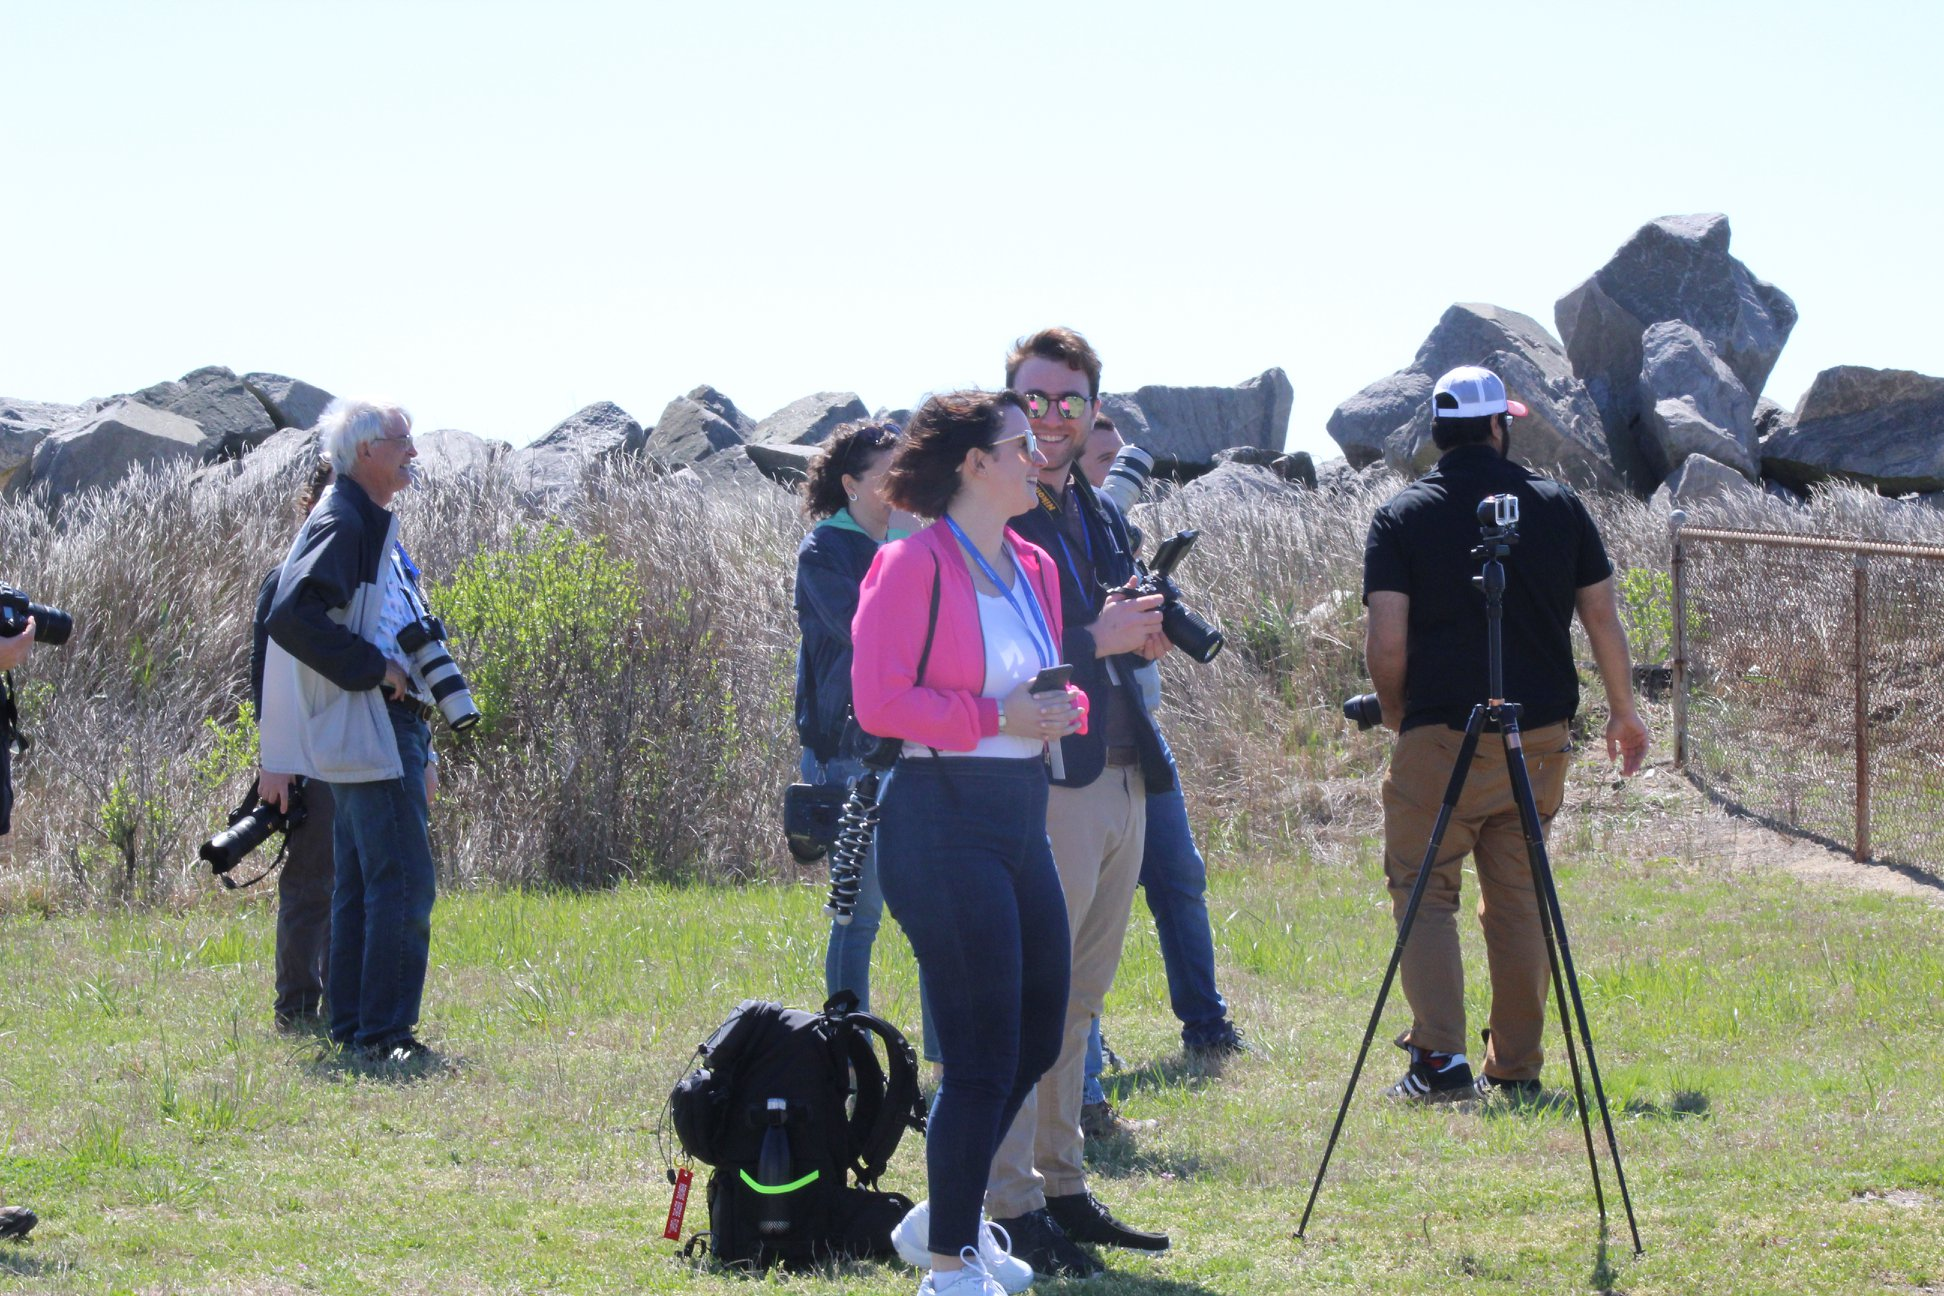 Photographers arriving at the press site to begin NG-11 launch coverage. (Photo: Jean Wright)